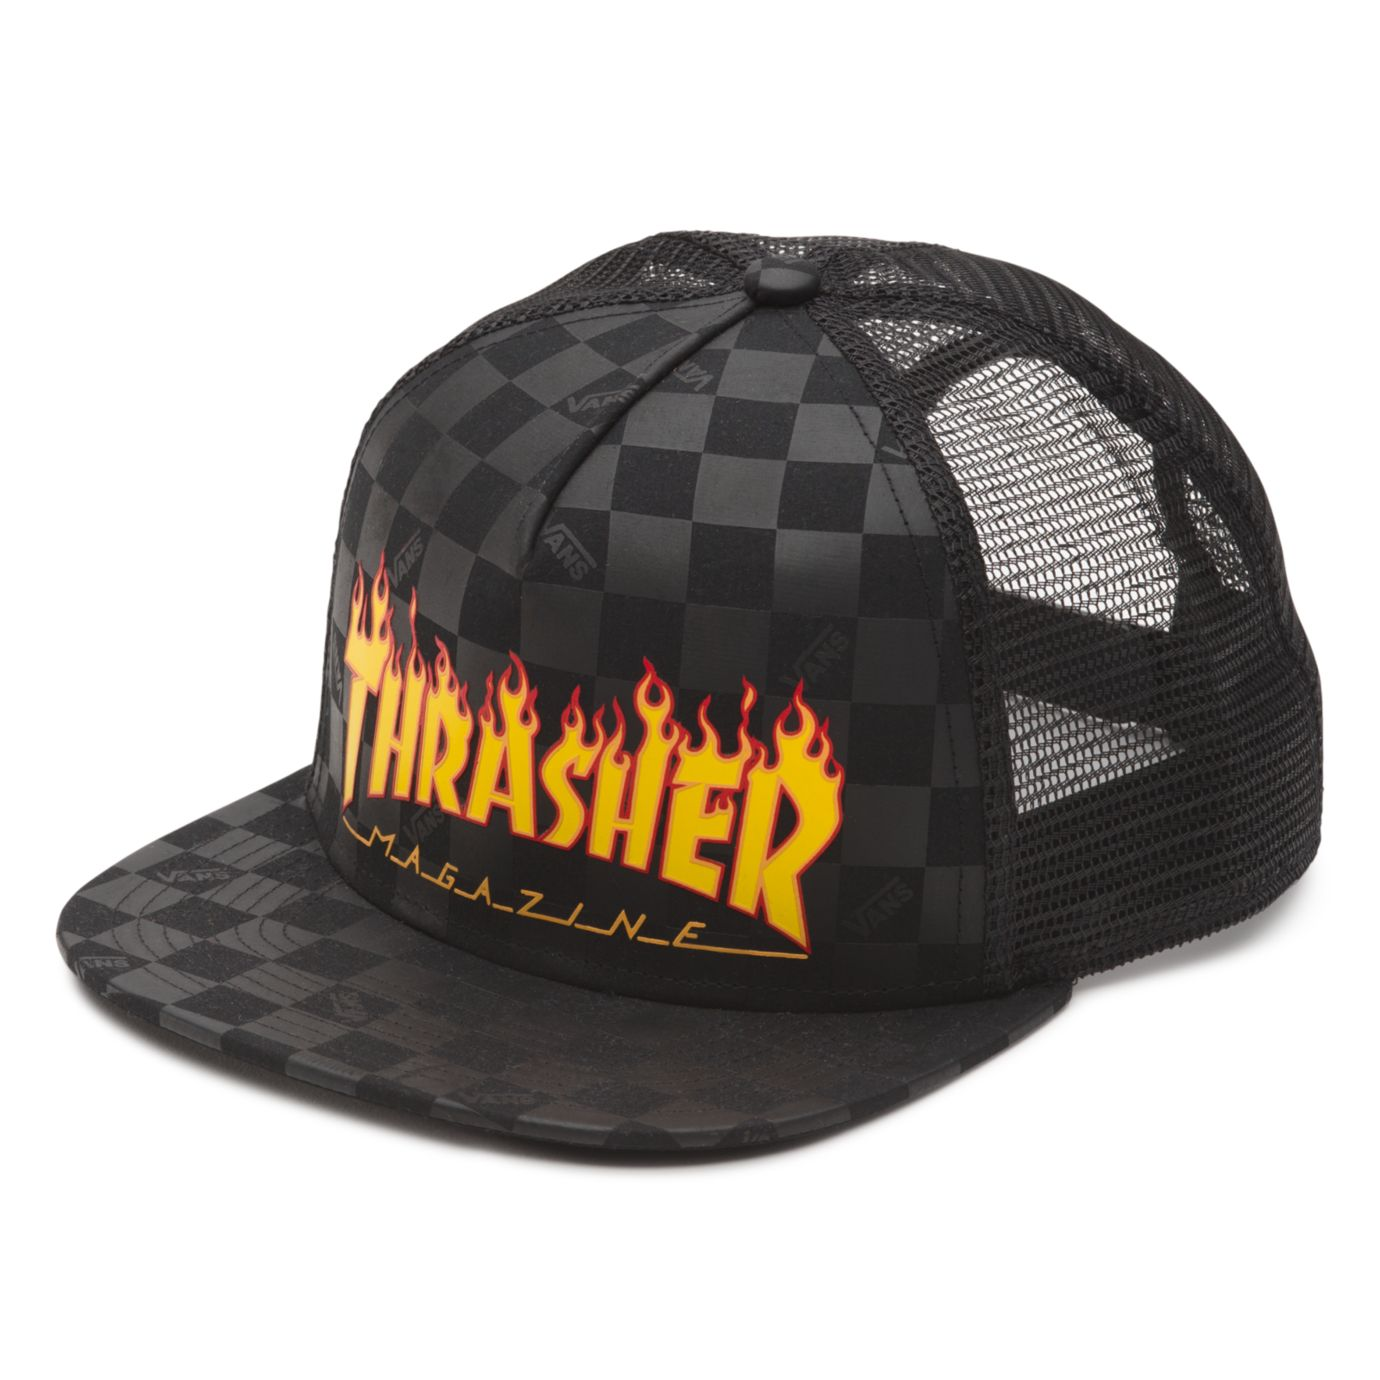 68382fd70fa Vans Commemorates Thrasher Magazine s Iconic Flame Motif